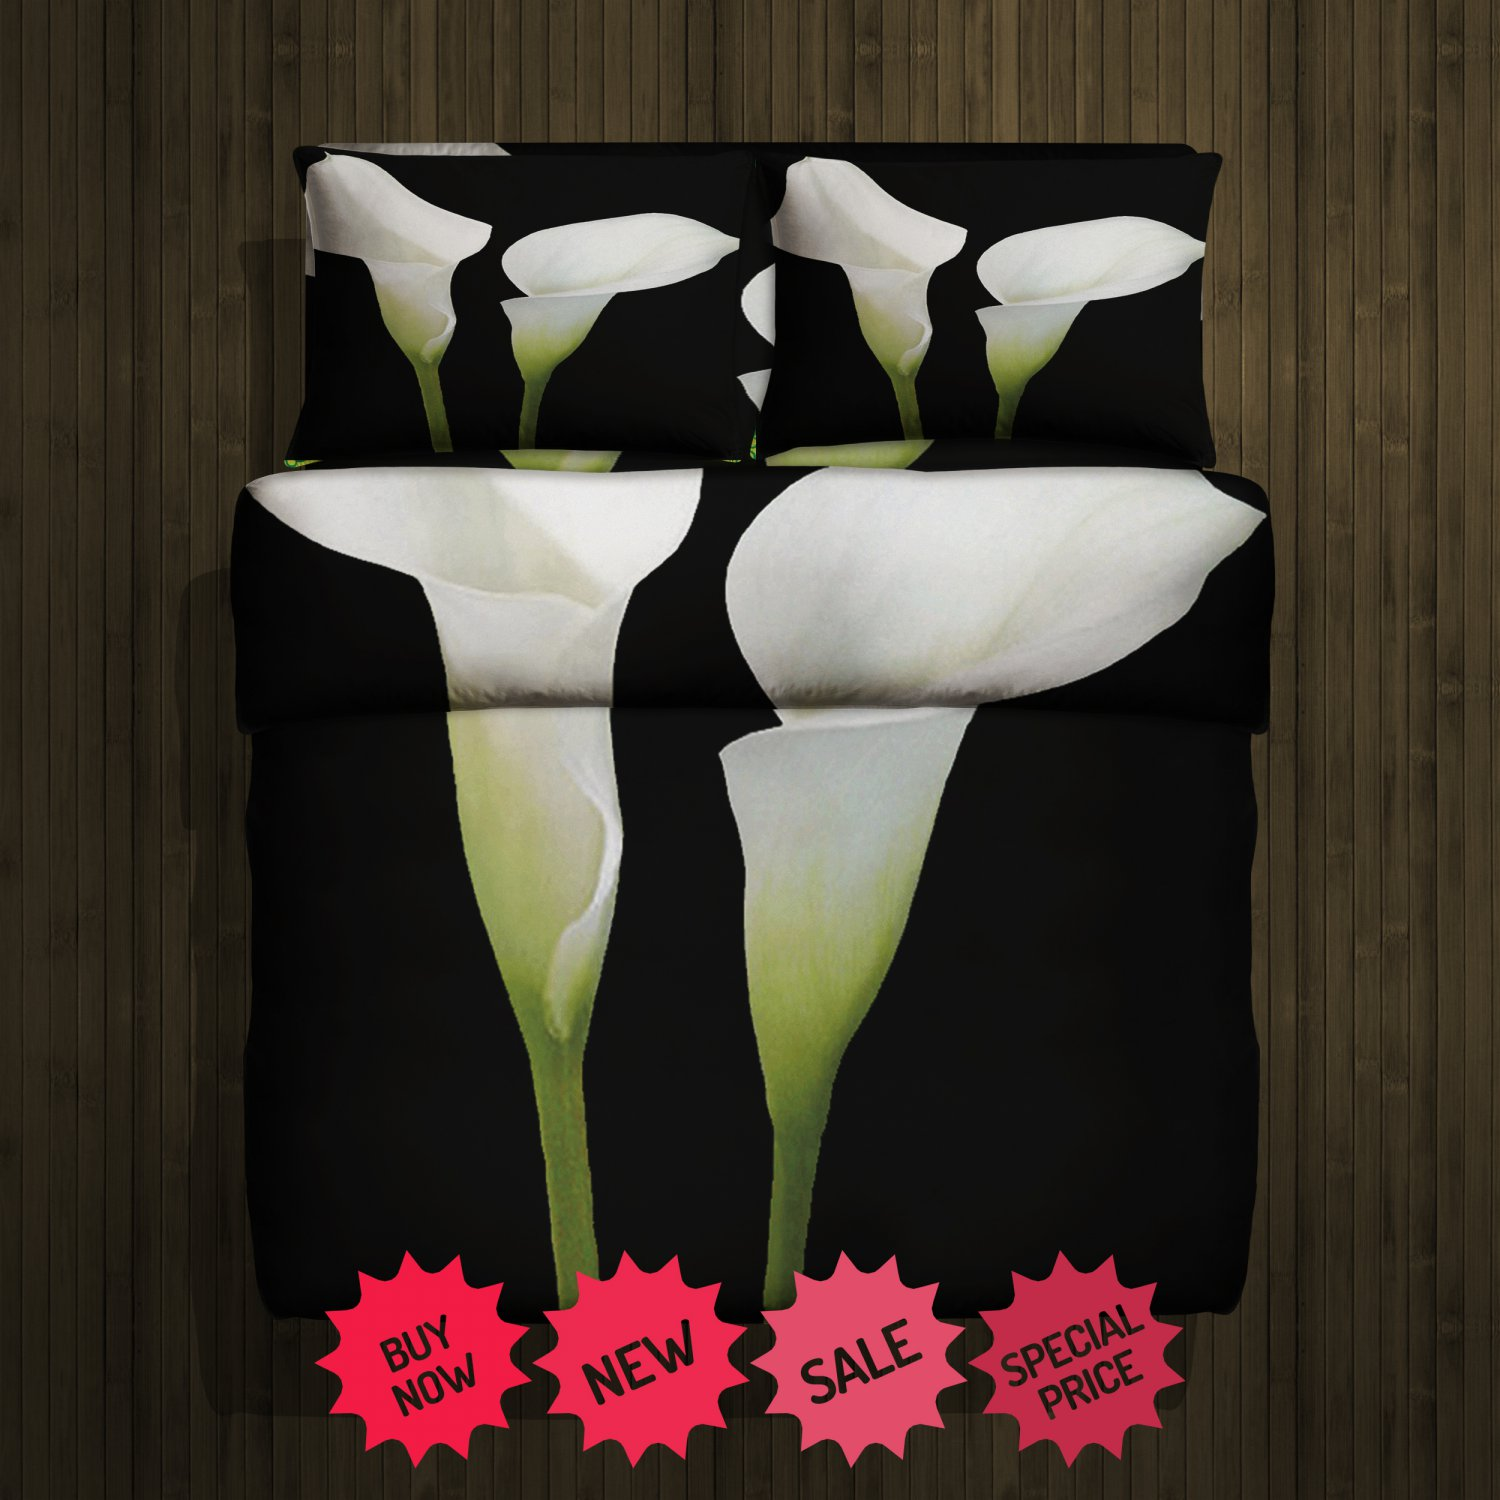 Lily Fleece Blanket Large & 2 Pillow Cases #84638898,84638901(2)